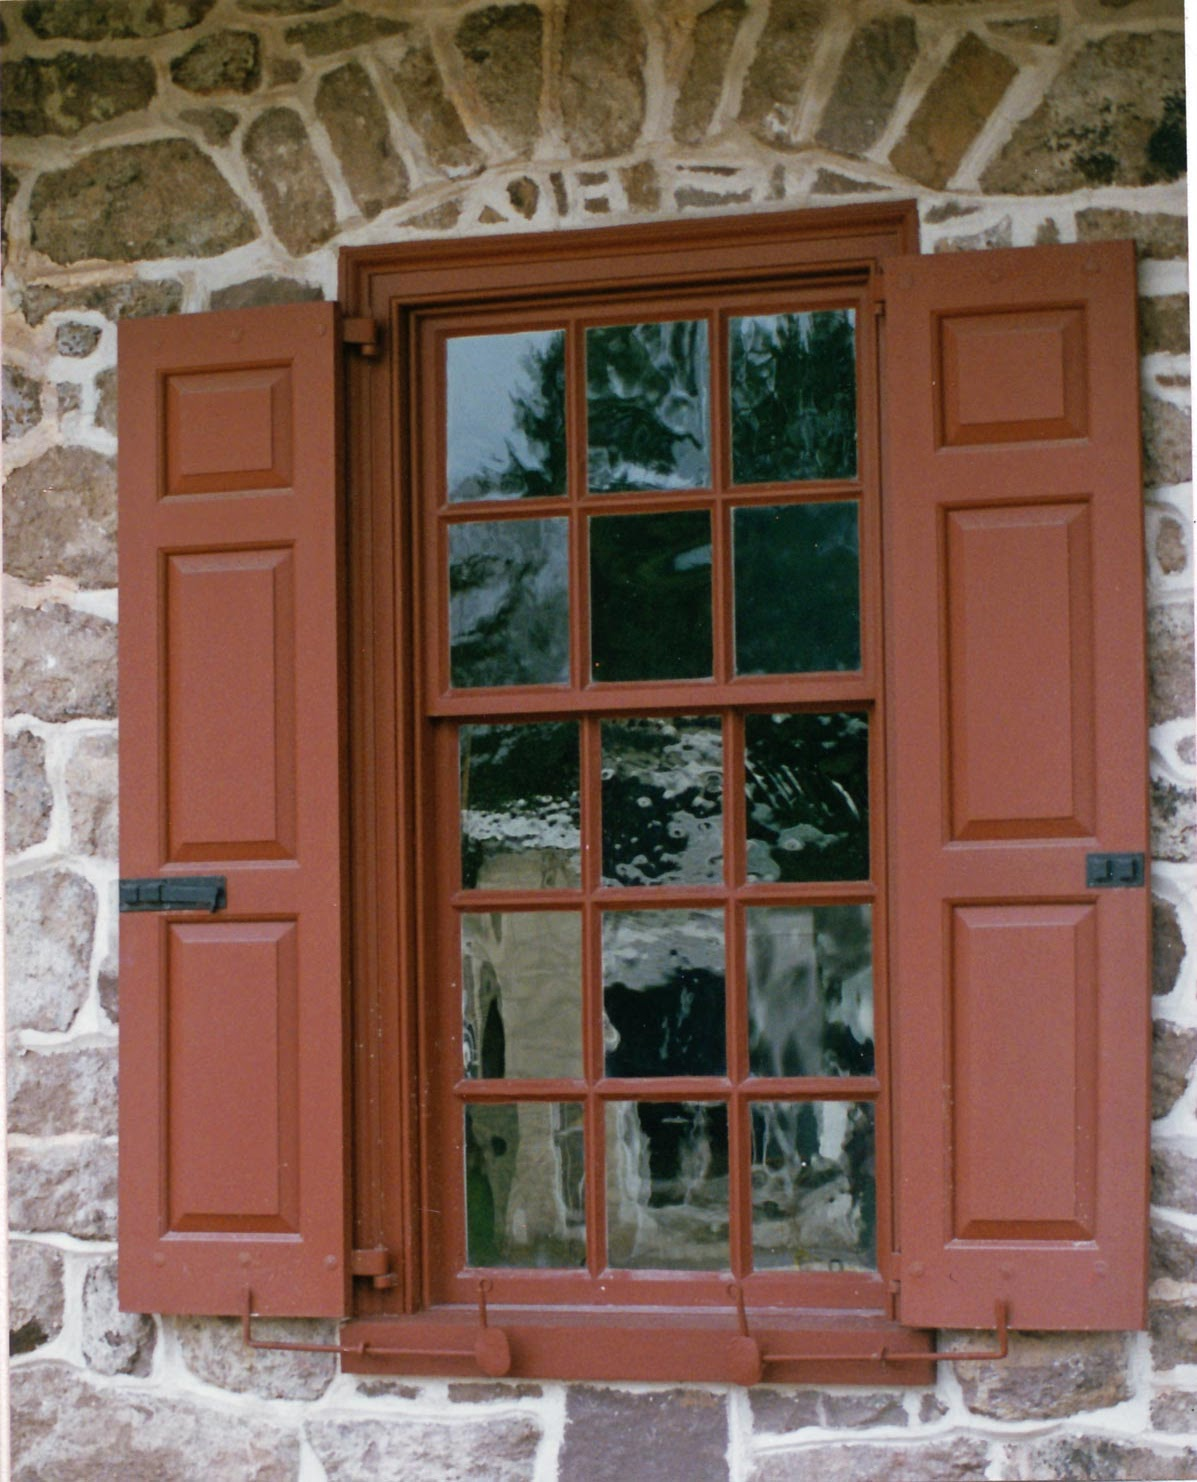 Custom wood windows : may 14, 2011